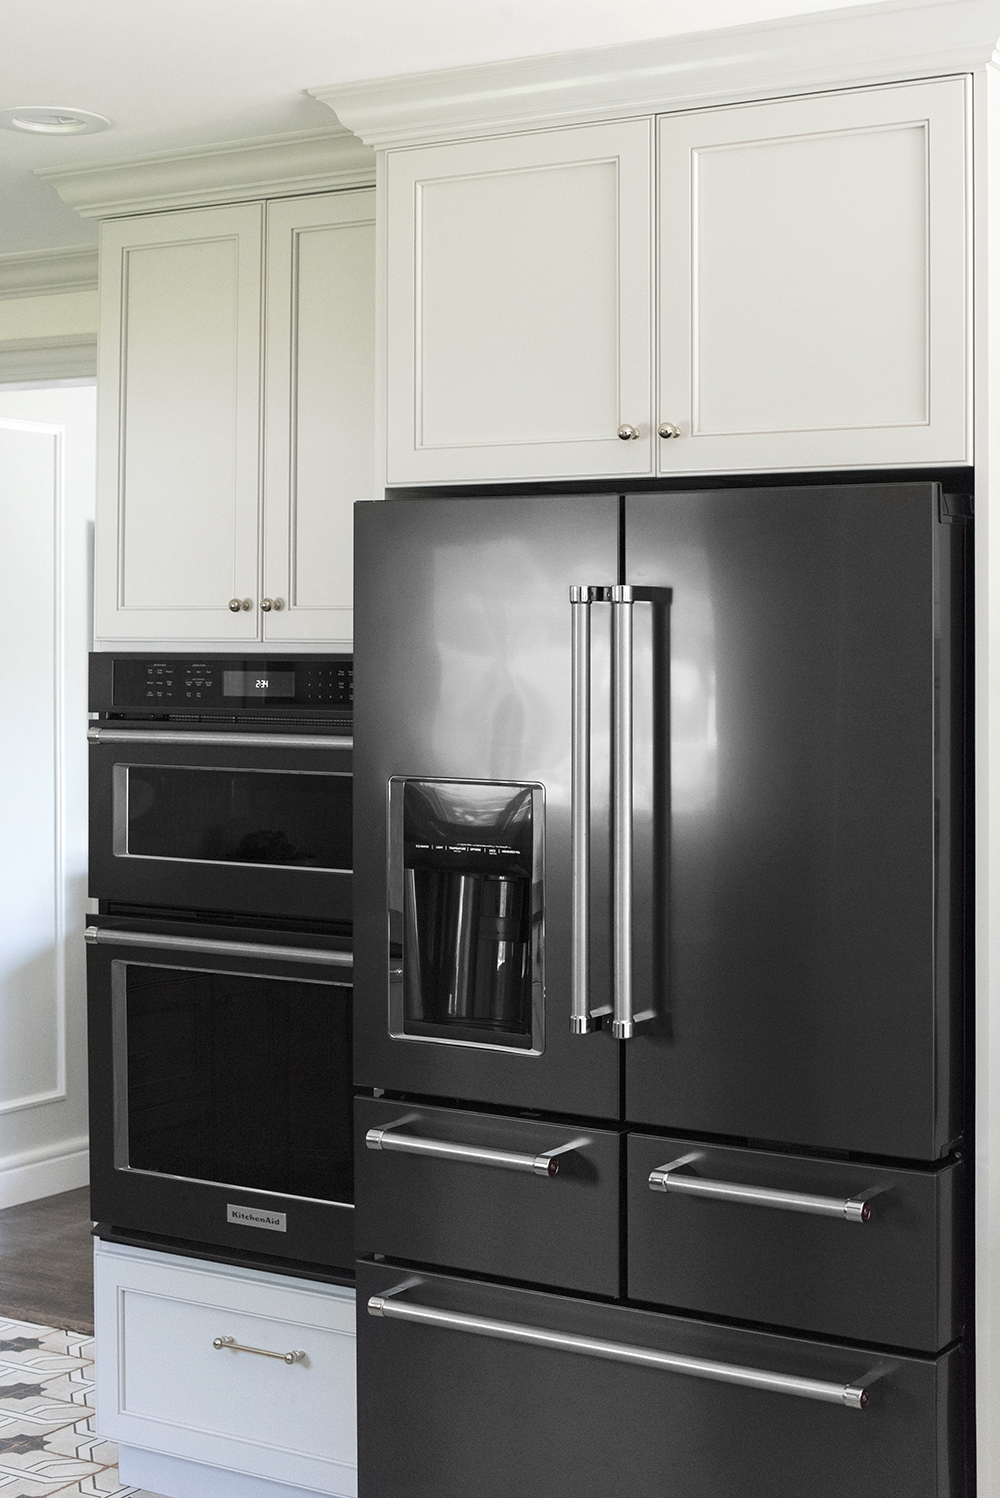 How To Choose Appliances That Fit Your Budget Room For Tuesday